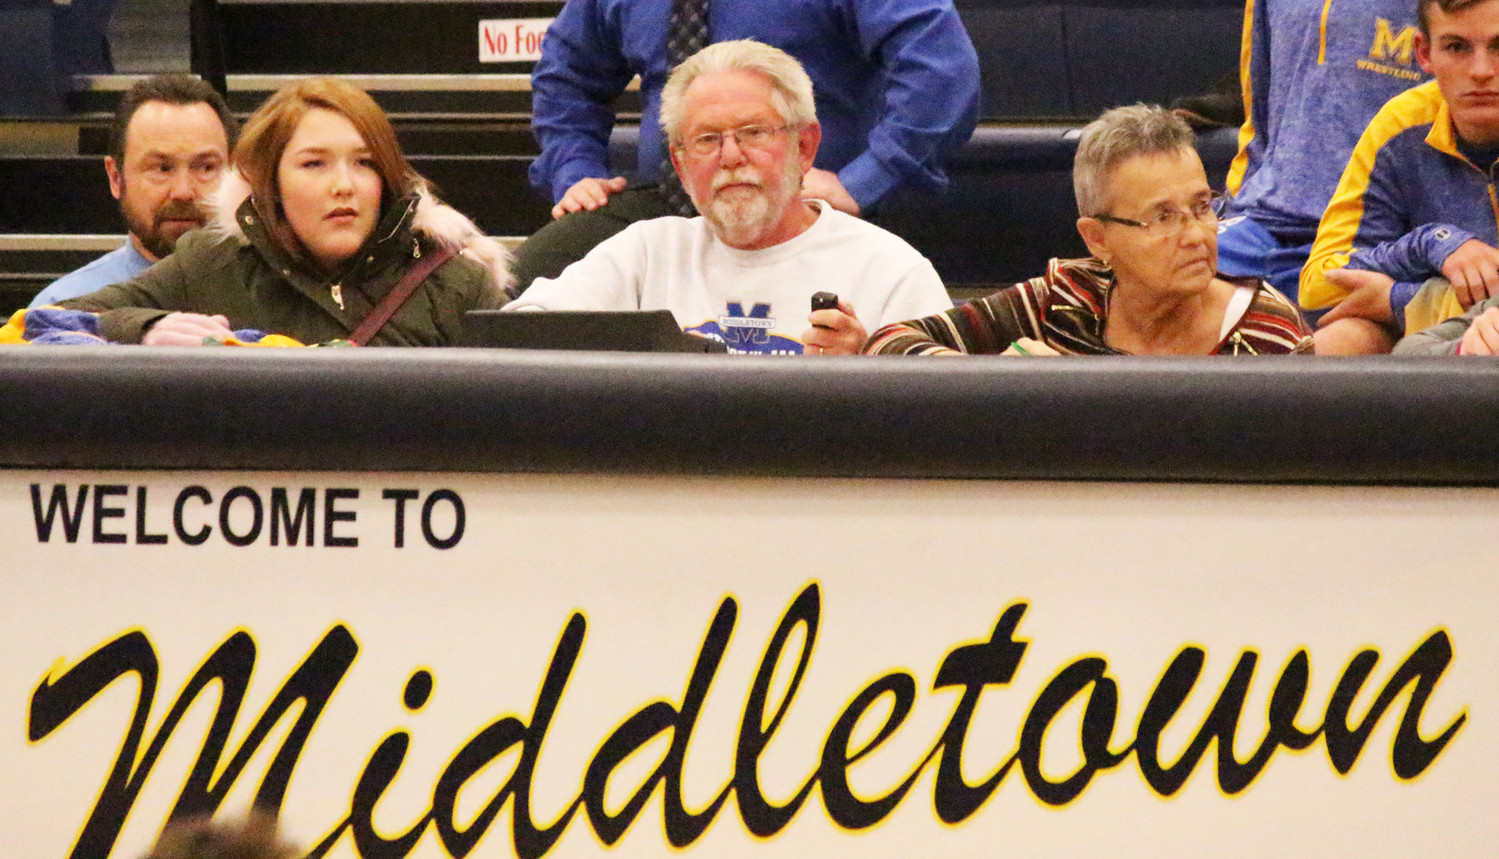 Earl Bright III, center, works the scoring table at a Middletown wrestling match in late December.